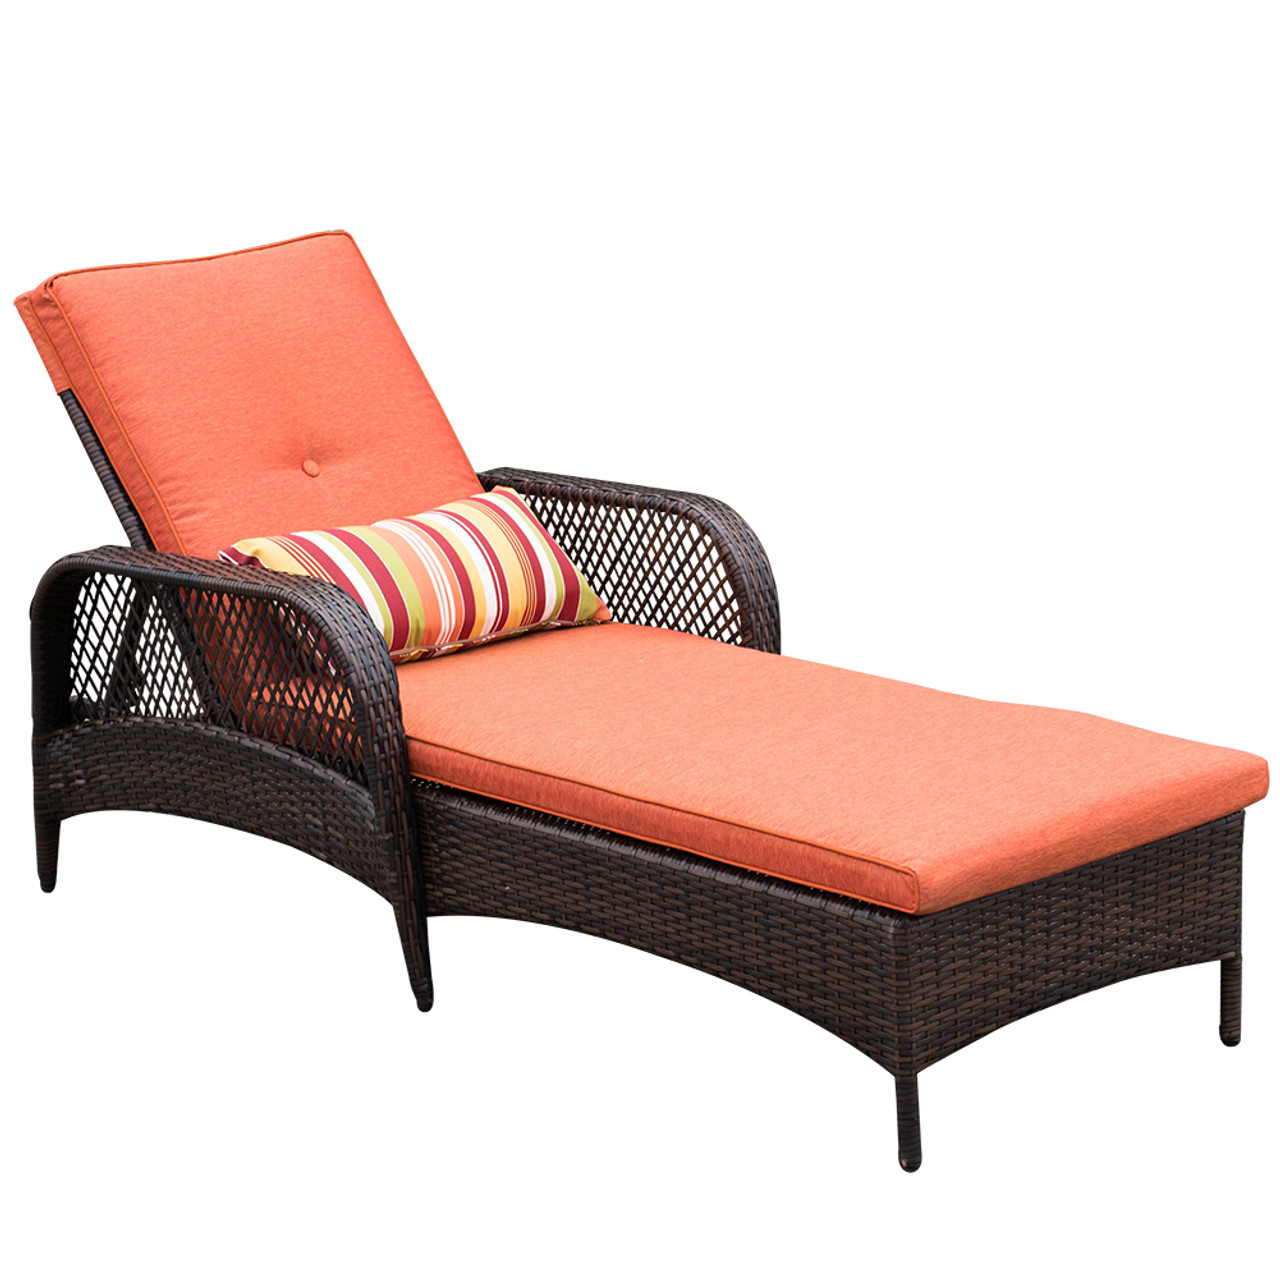 luxury reclining brown wicker chaise lounge chair outdoor patio yard furniture all weather with. Black Bedroom Furniture Sets. Home Design Ideas